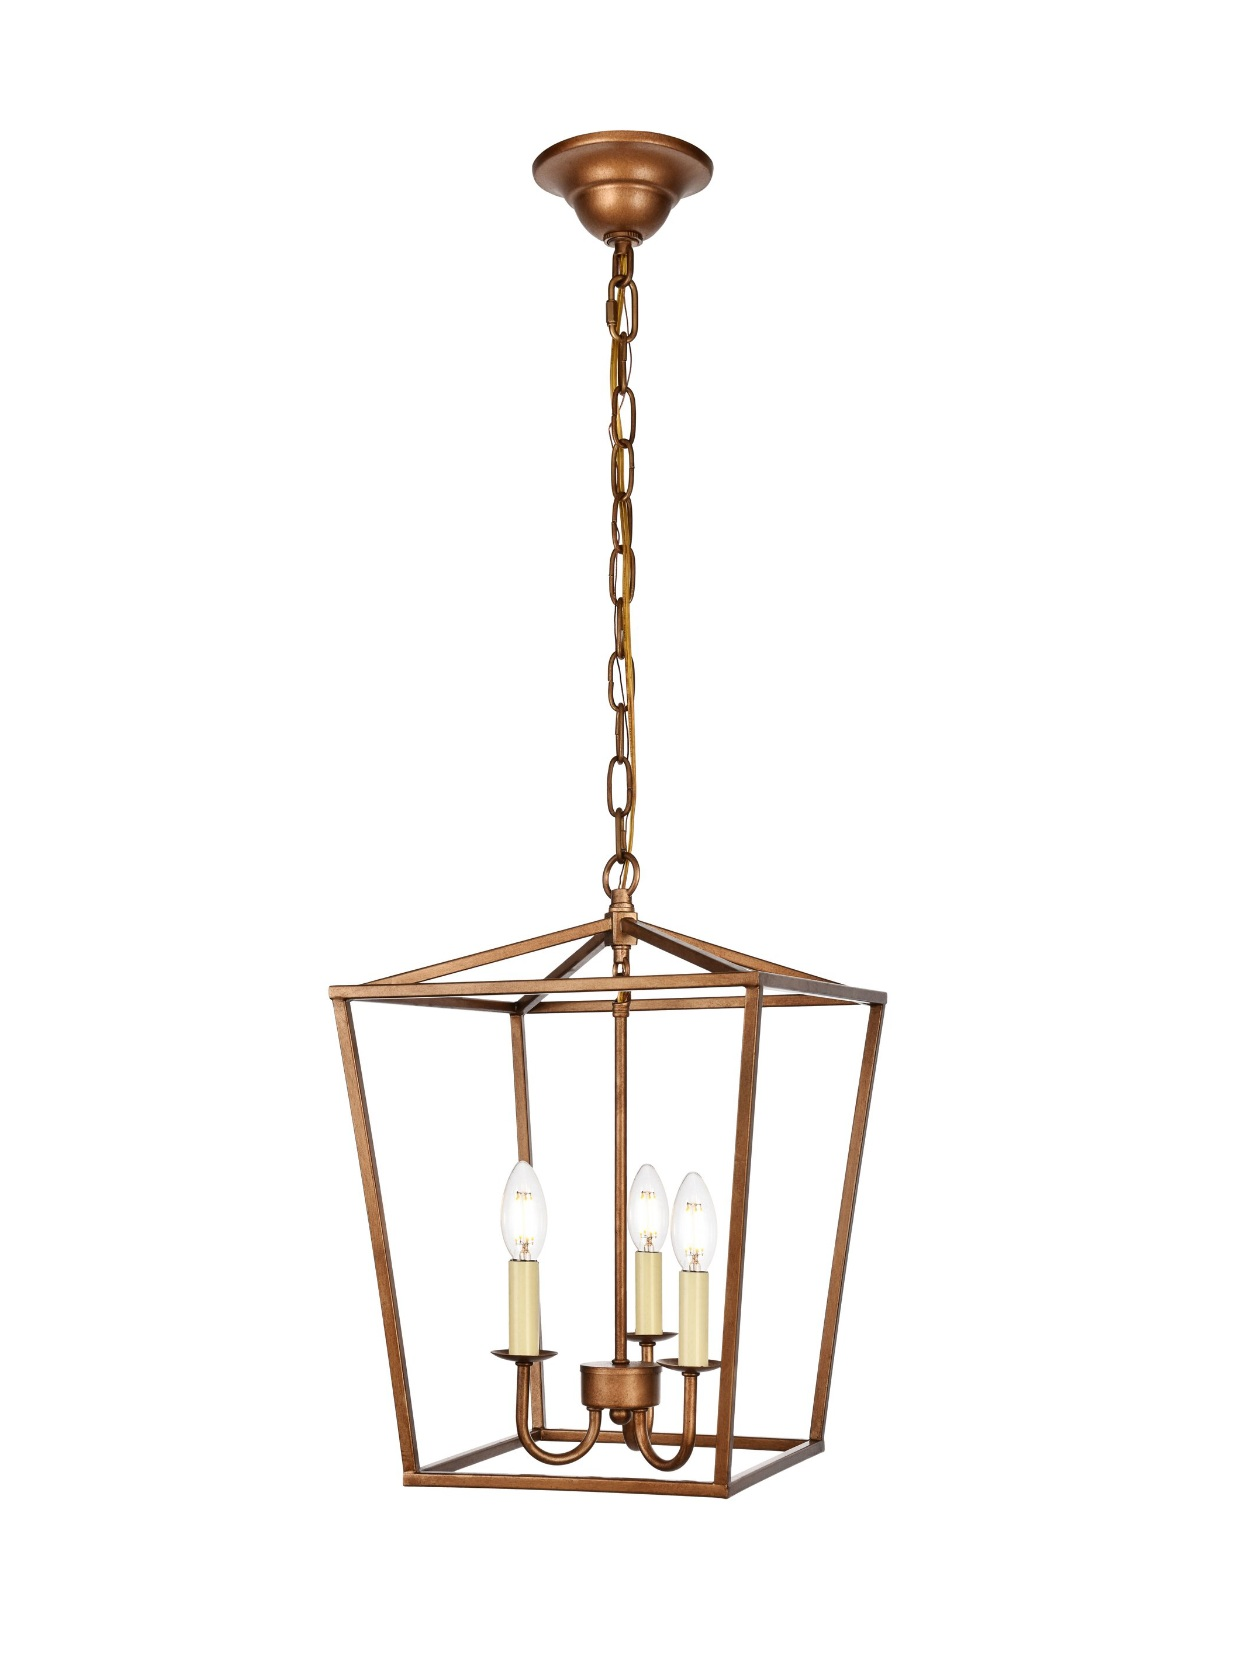 - Happy dance for finally switching out the over island pendant lights! These are perfect!Find it here.